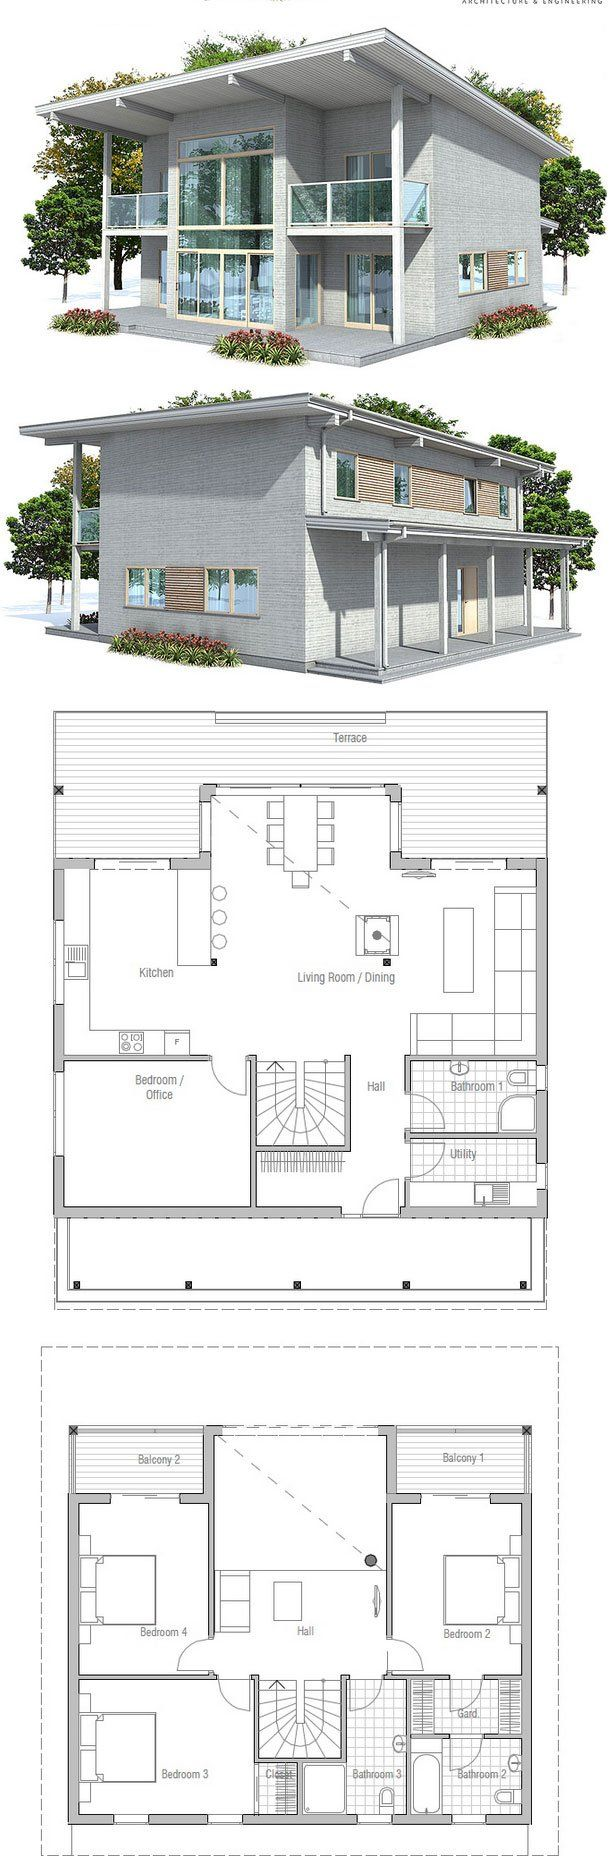 Architecture Design Of Small House